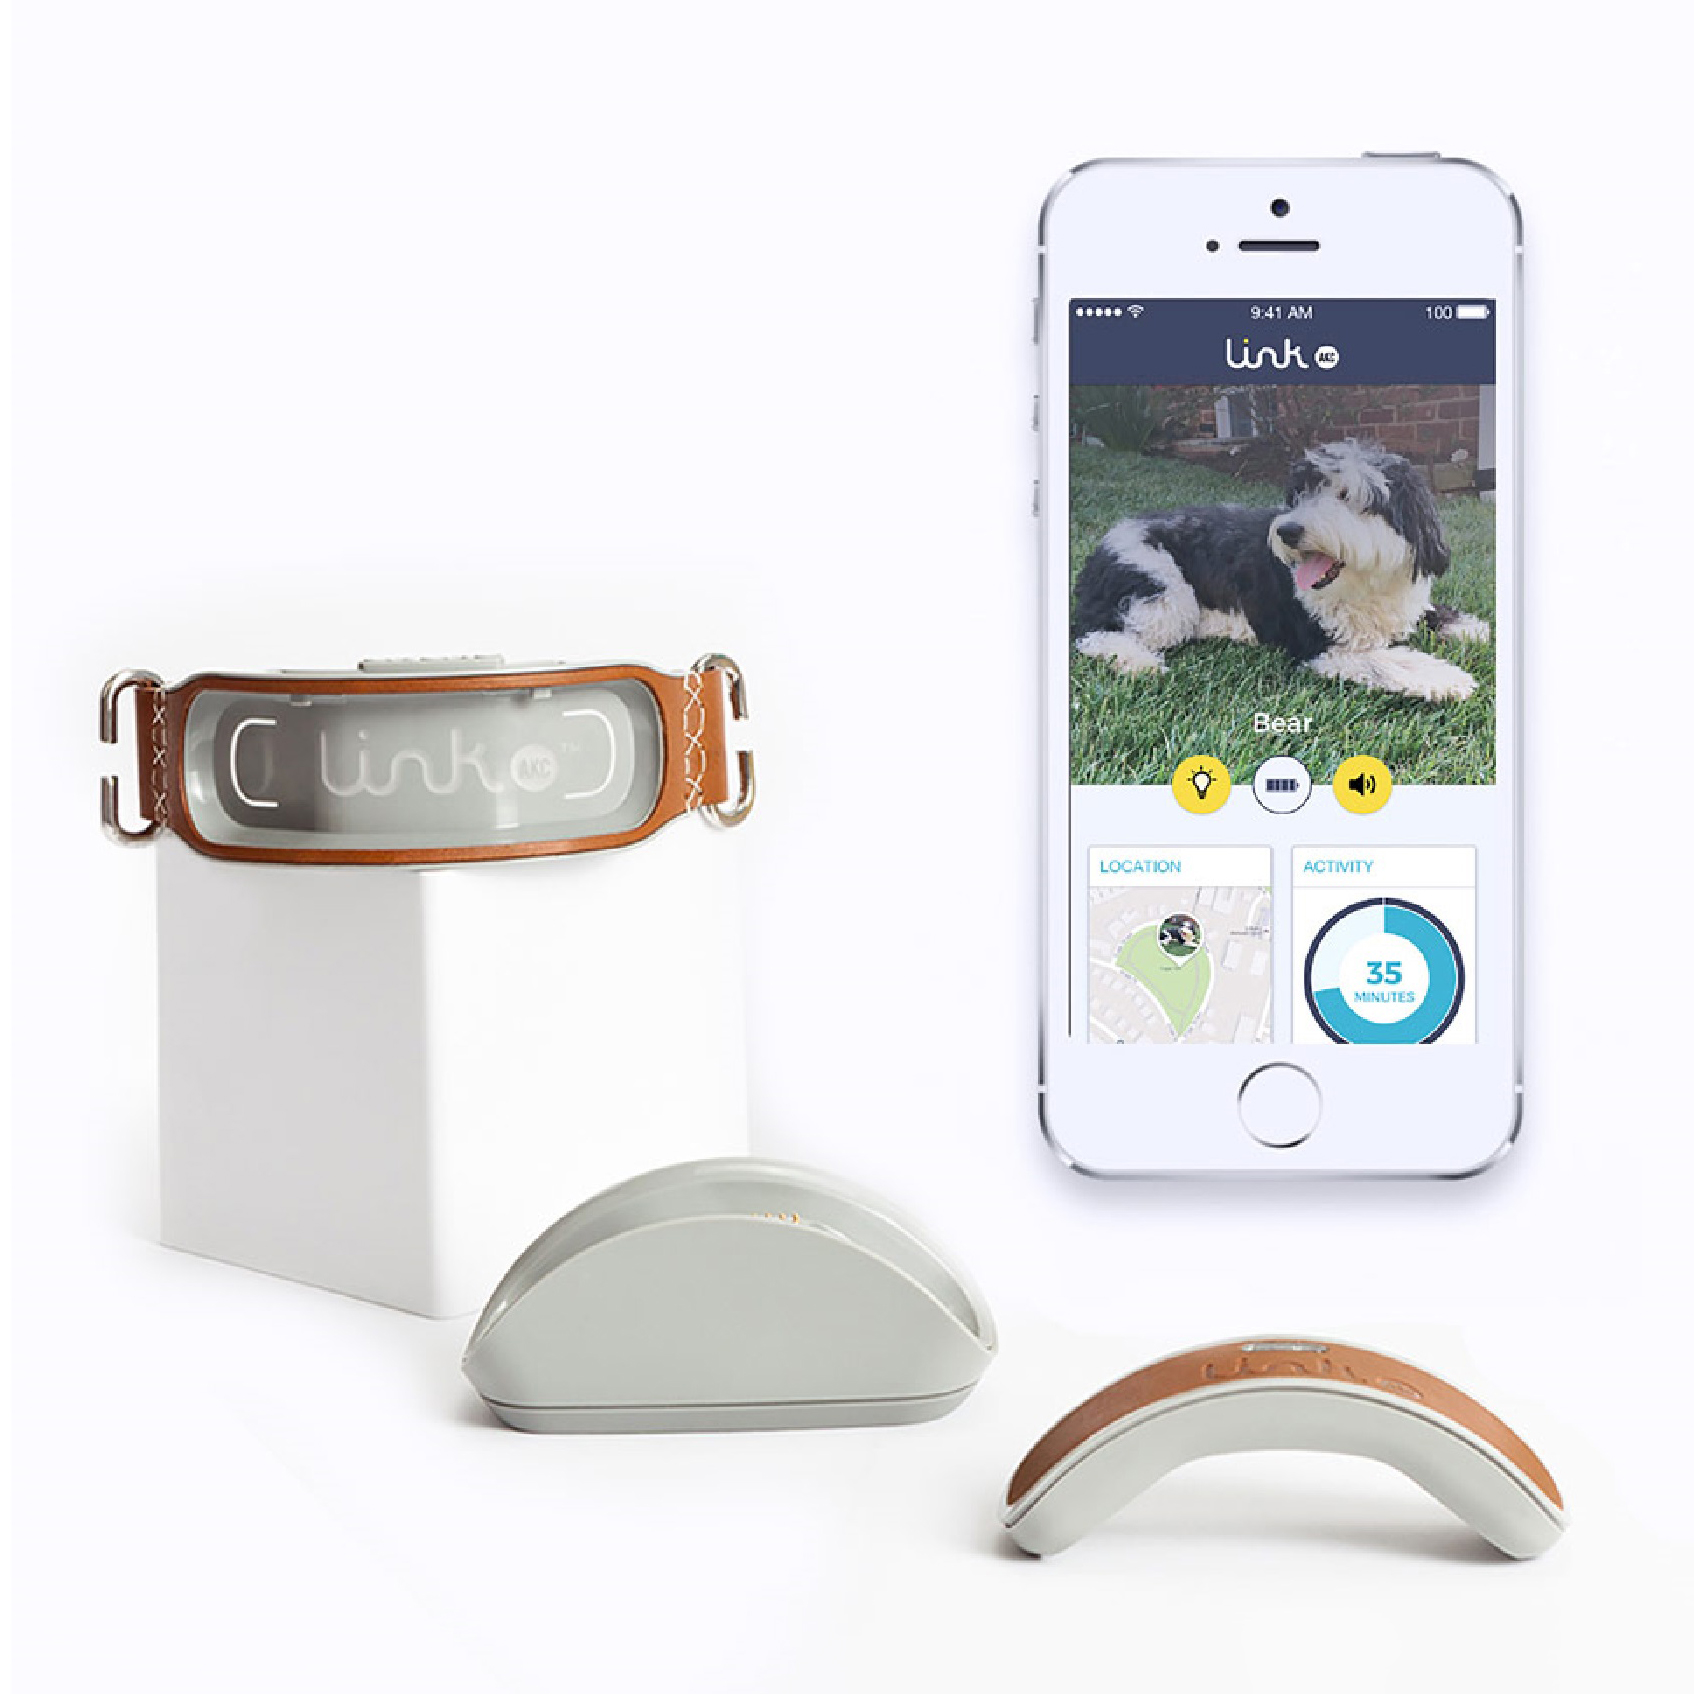 link-plus-smart-dog-gps-tracker